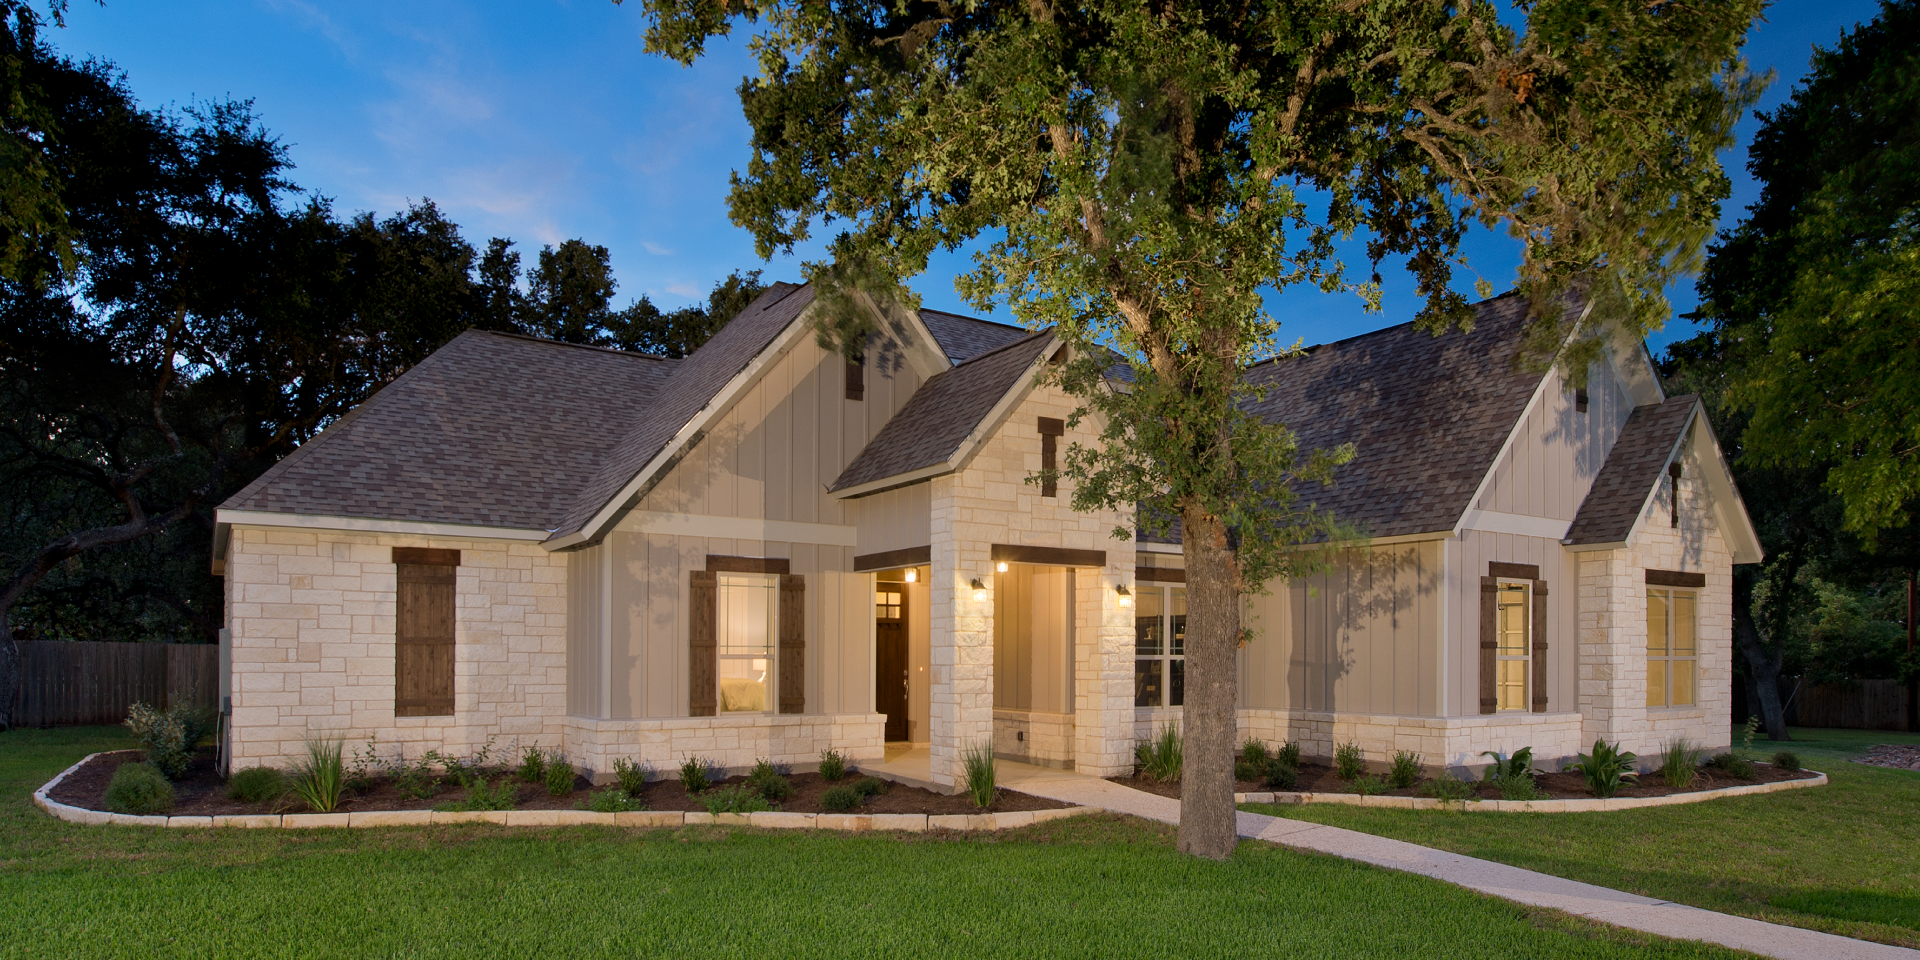 The Wimberley Custom Home Plan from Tilson Homes